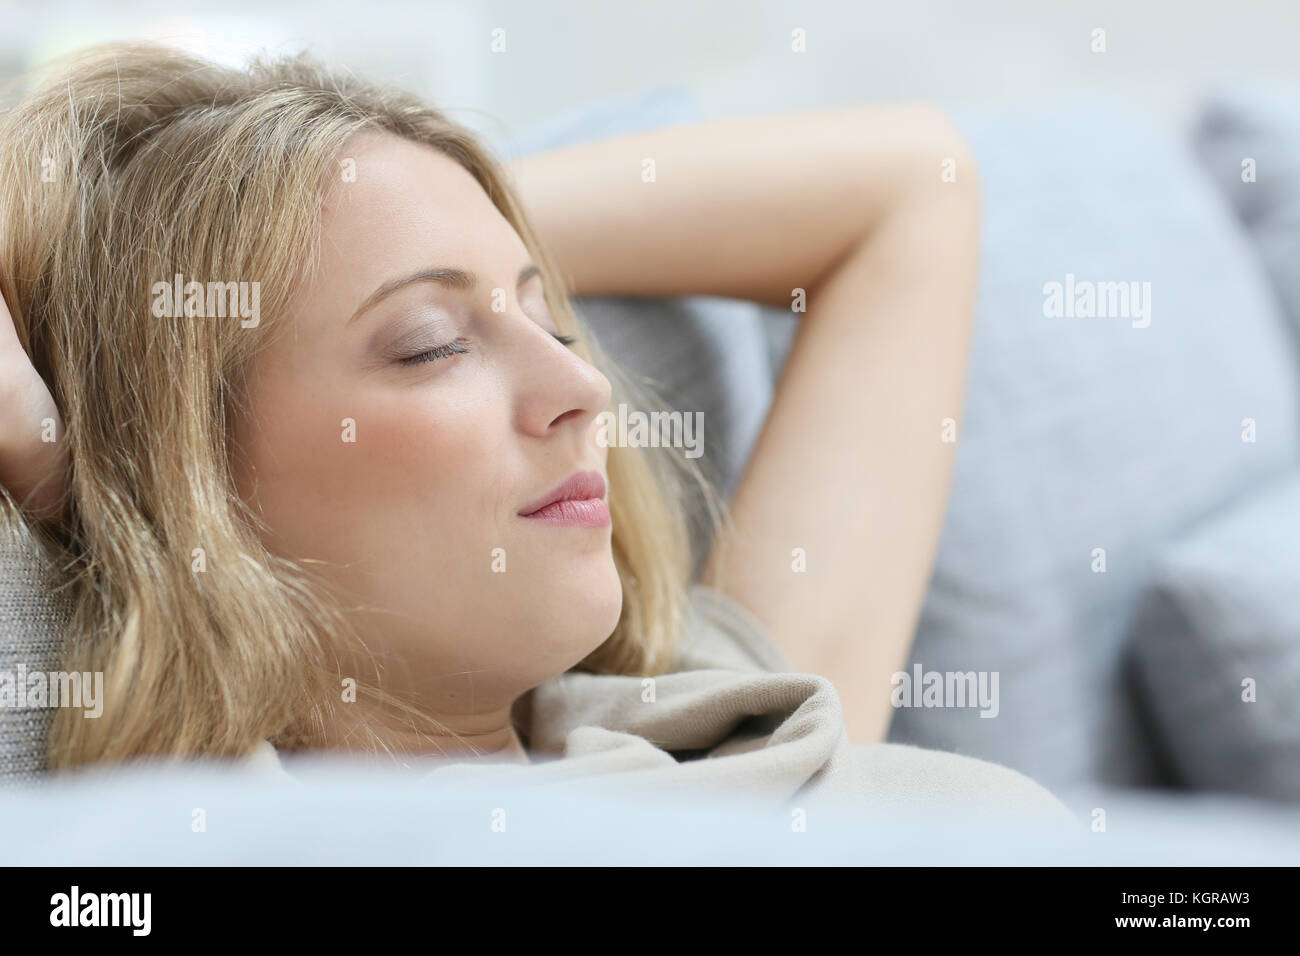 Blond woman in sofa relaxing with eyes shut - Stock Image